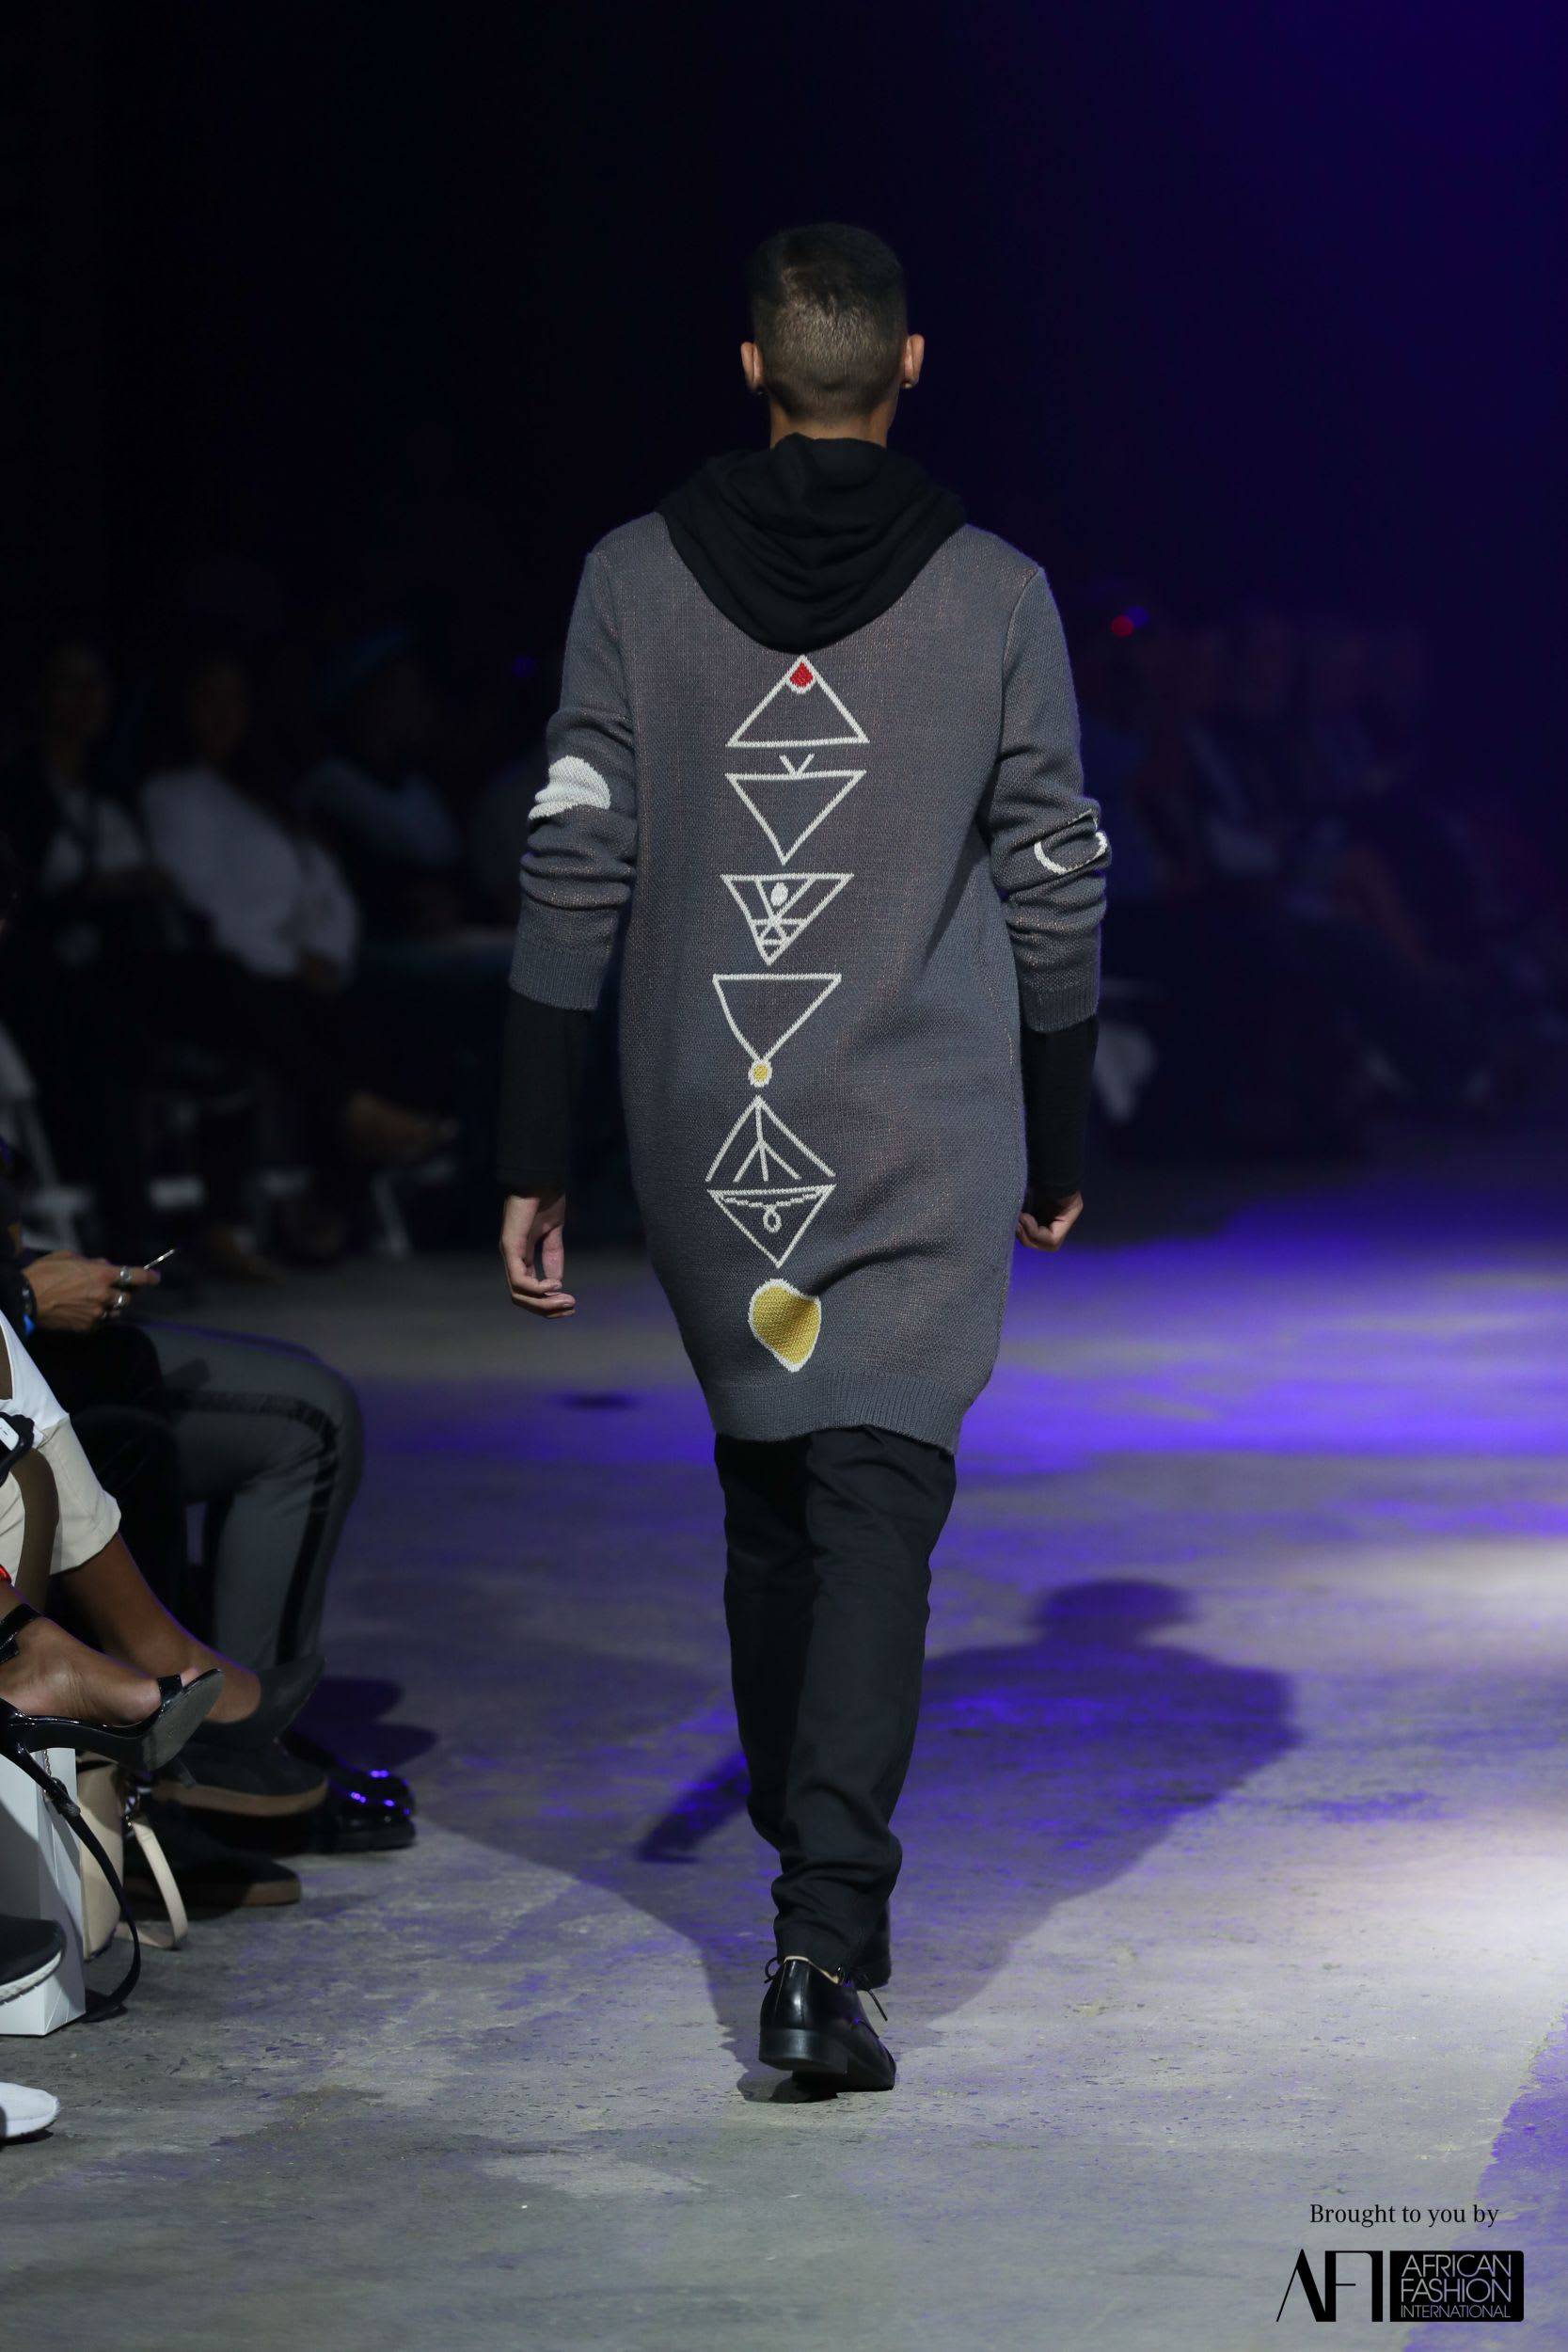 #AFICTFW18 | Unknown Union